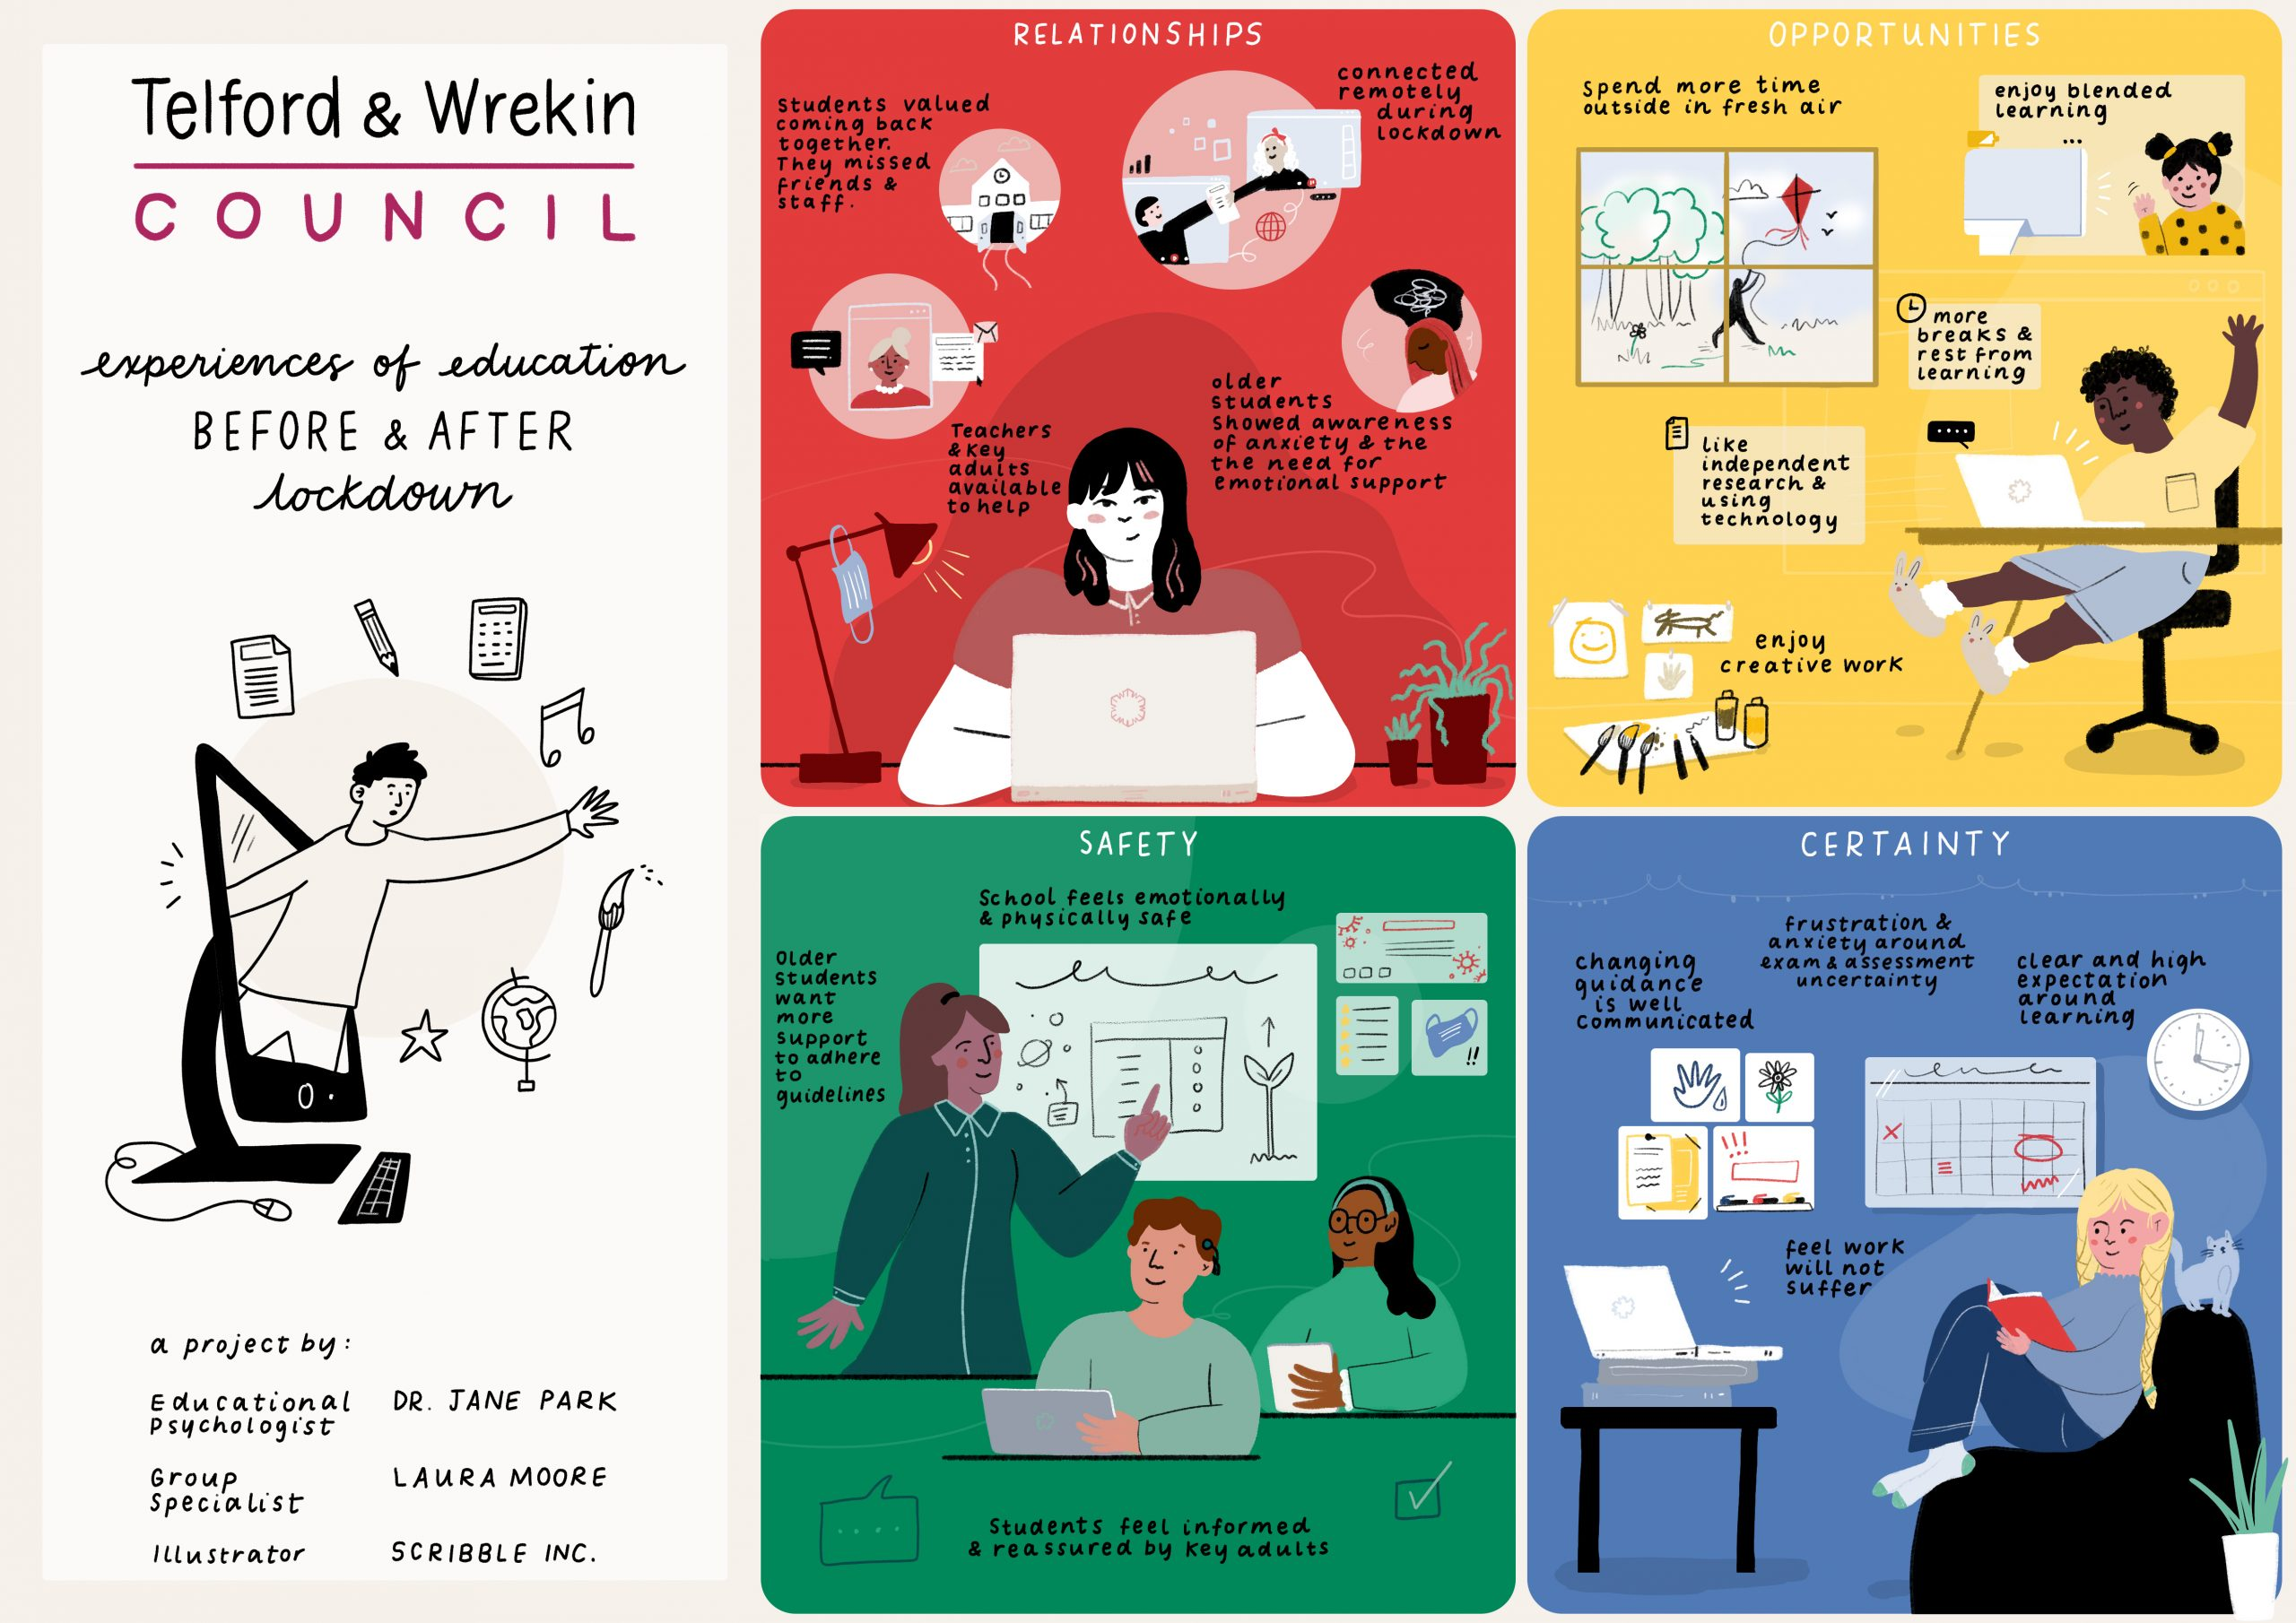 A graphic visualisation of young people's experiences of education before and after lockdown, in Telford and Wrekin. The four themes covered are relationships, opportunities, safety and certainty. These themes are discussed in the blog post.